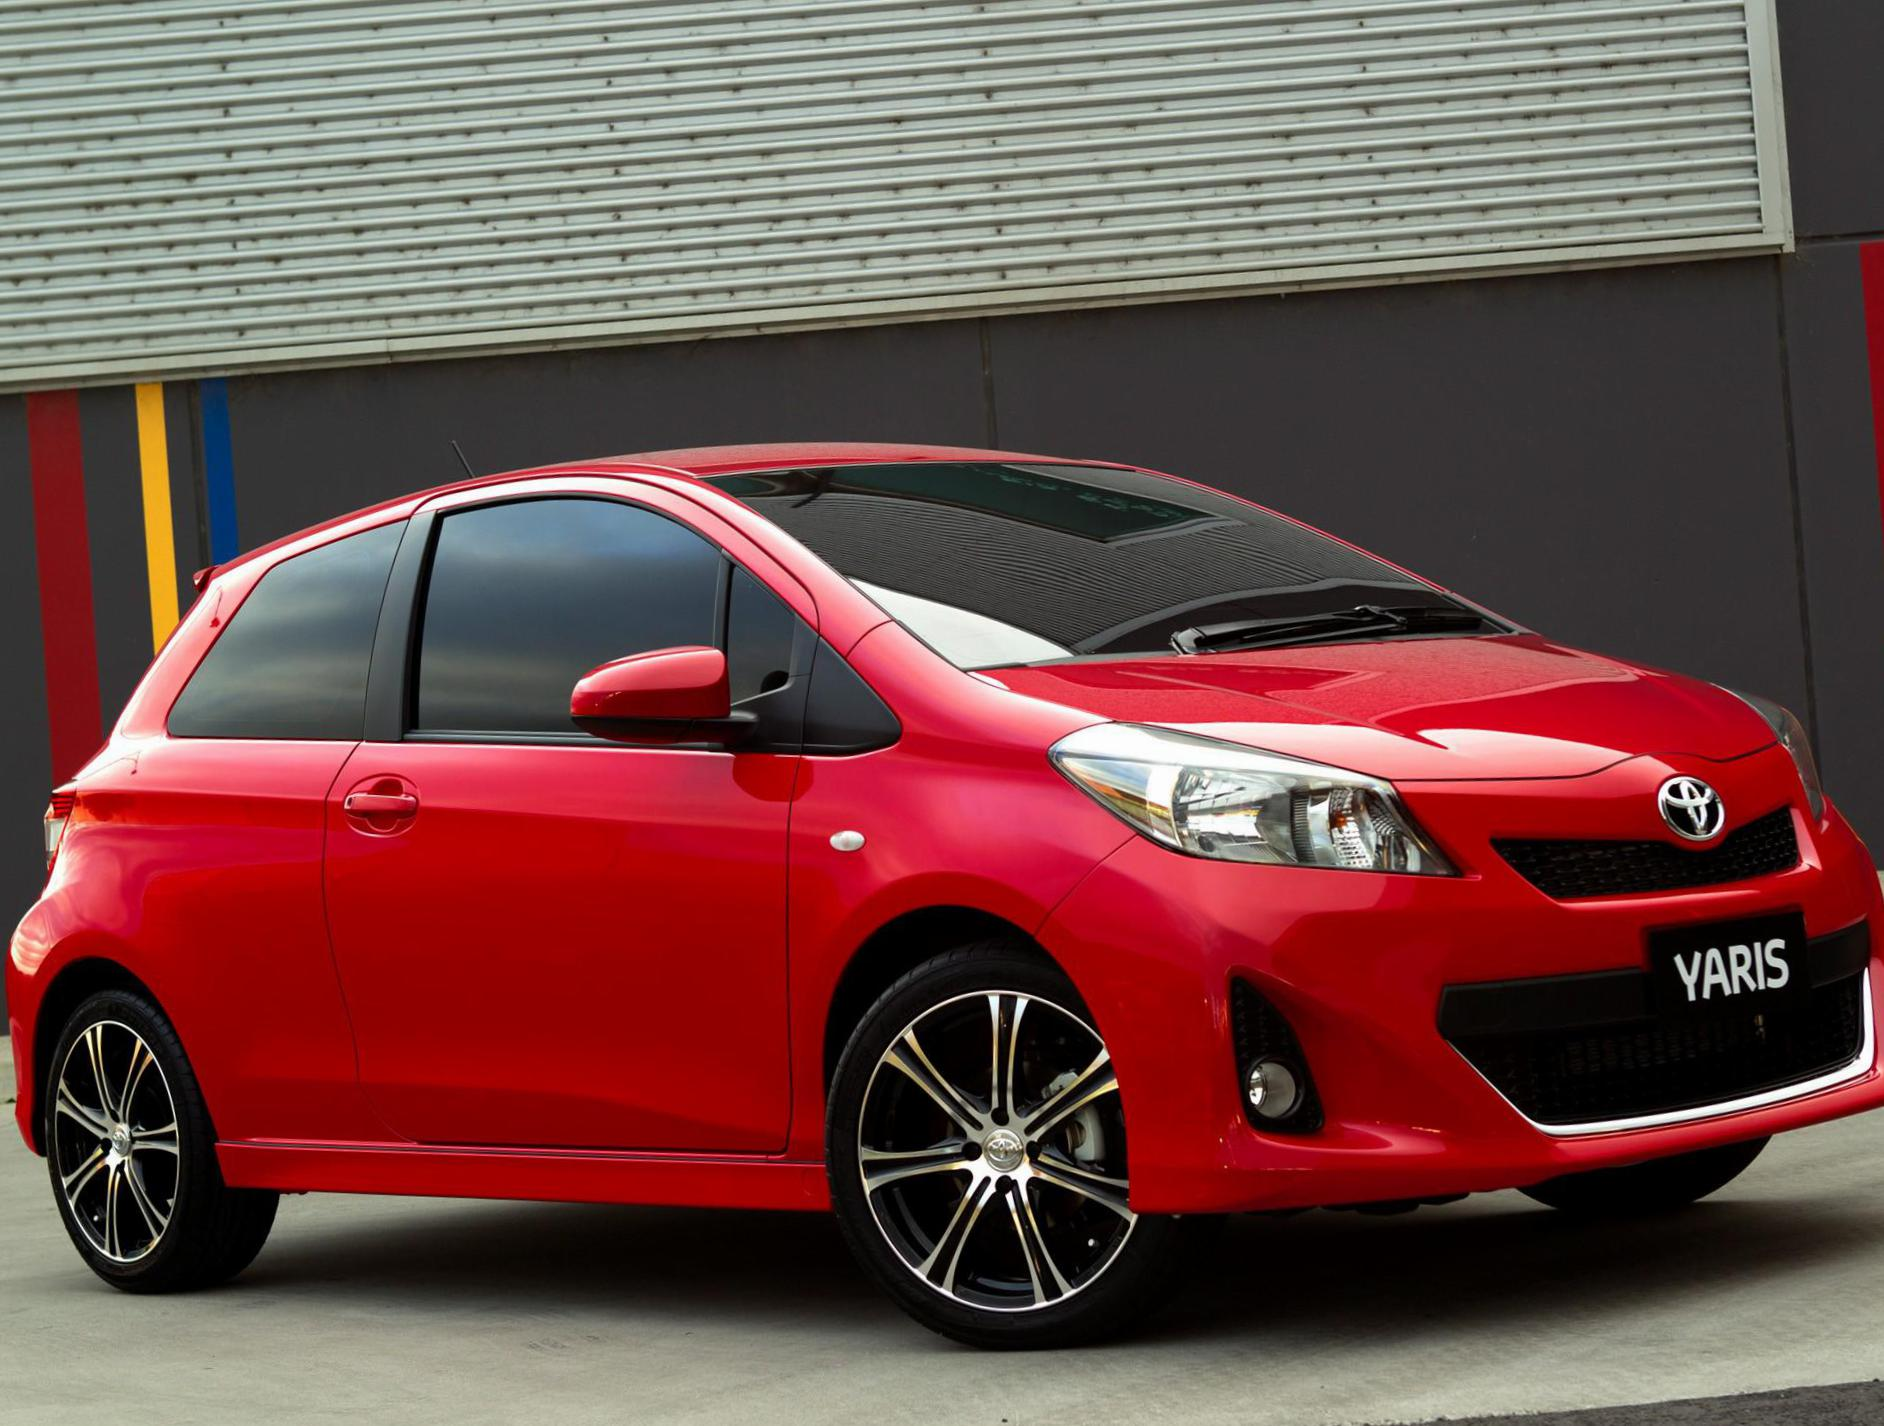 toyota yaris 3 doors photos and specs photo yaris 3 doors toyota for sale and 26 perfect. Black Bedroom Furniture Sets. Home Design Ideas